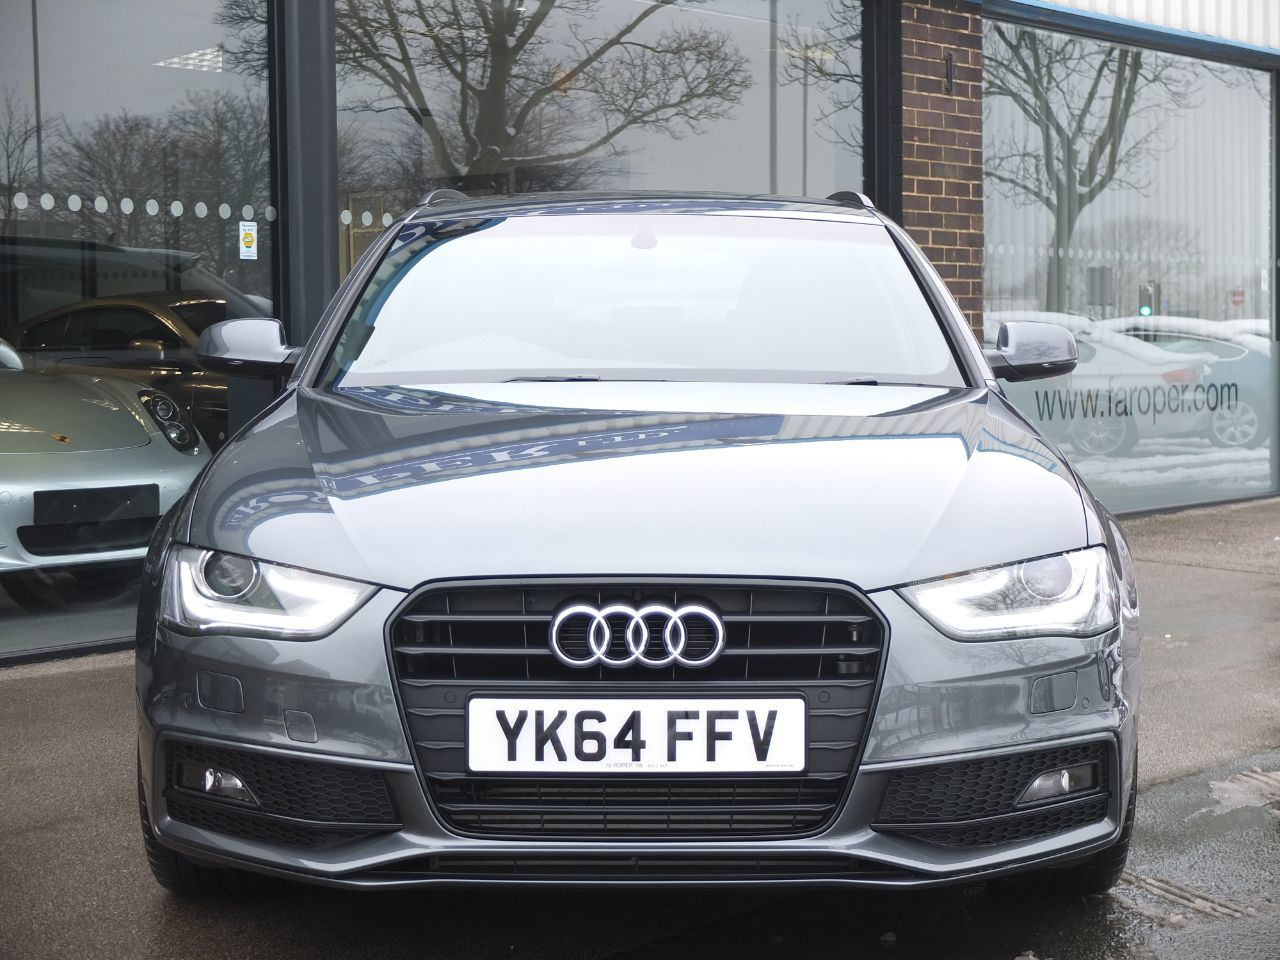 Audi A4 Avant 2.0 TDI 150 ps Black Edition Multitronic +++Spec Estate Diesel Grey